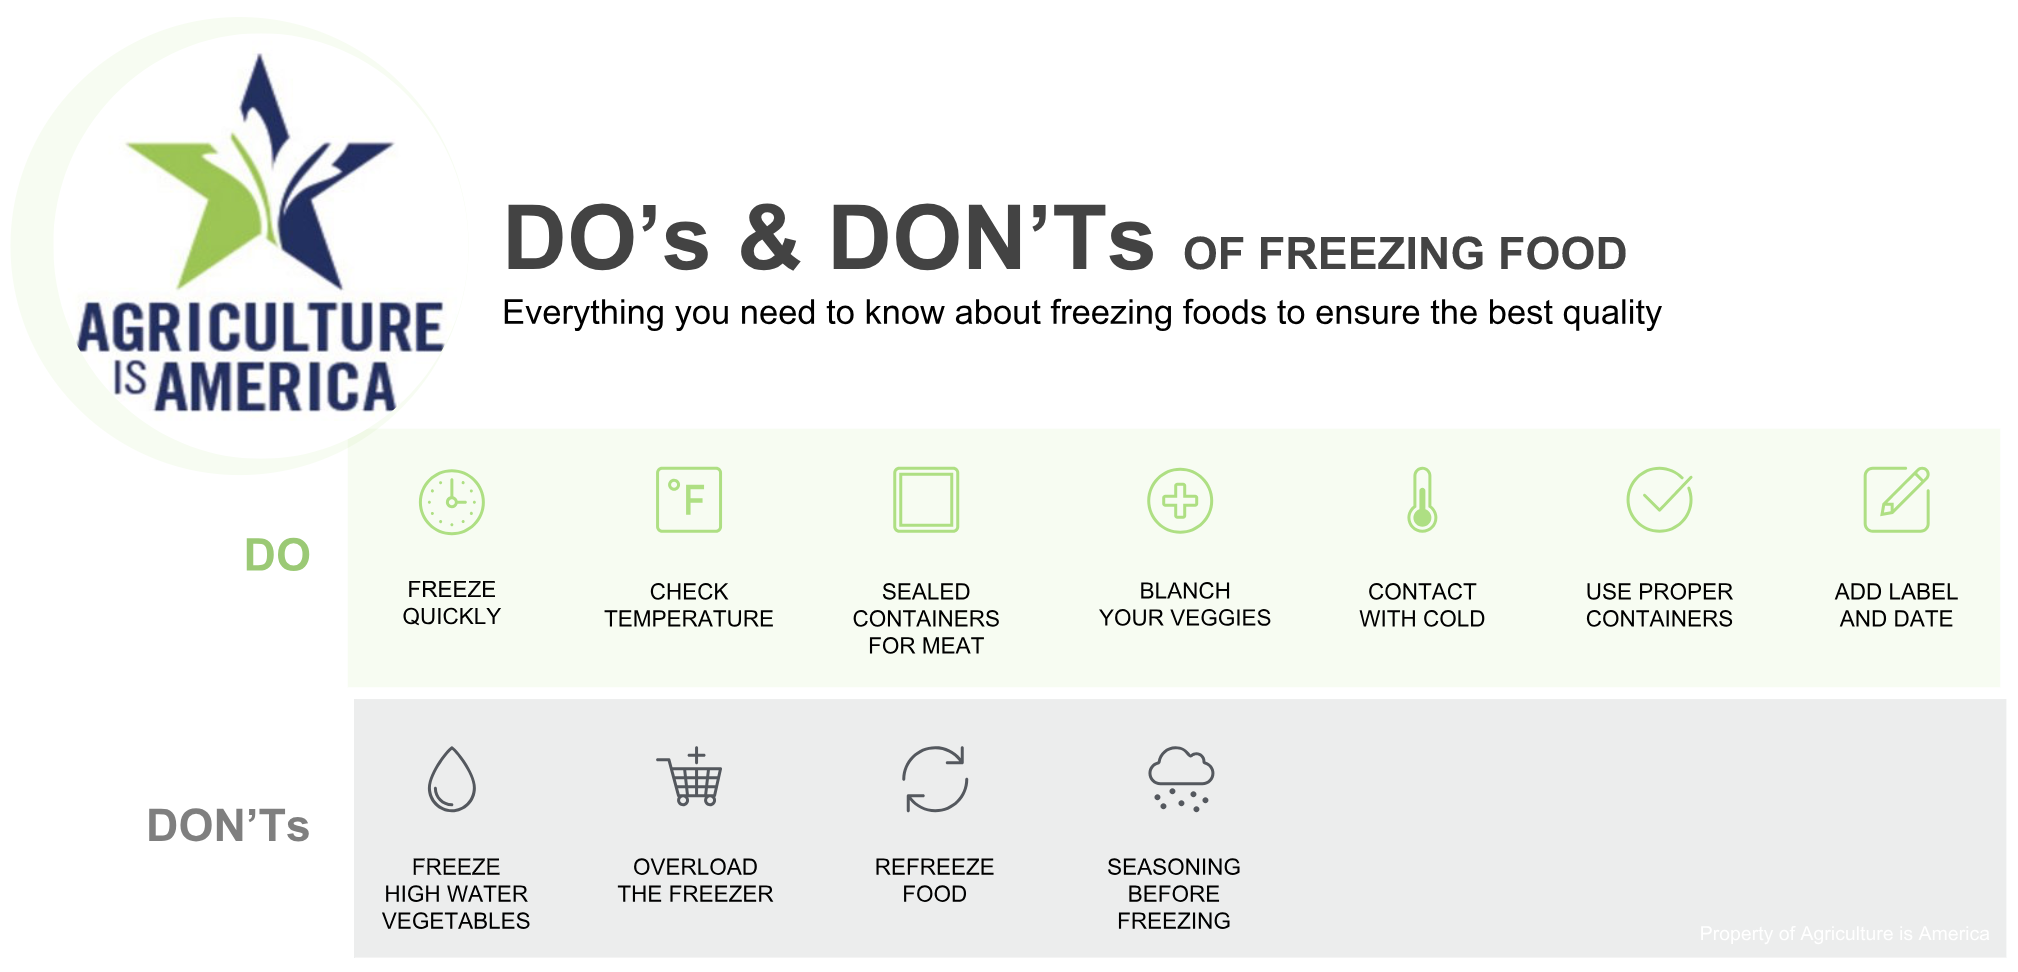 Table of DOs and DON'TS of freezing food by Agriculture Is America.